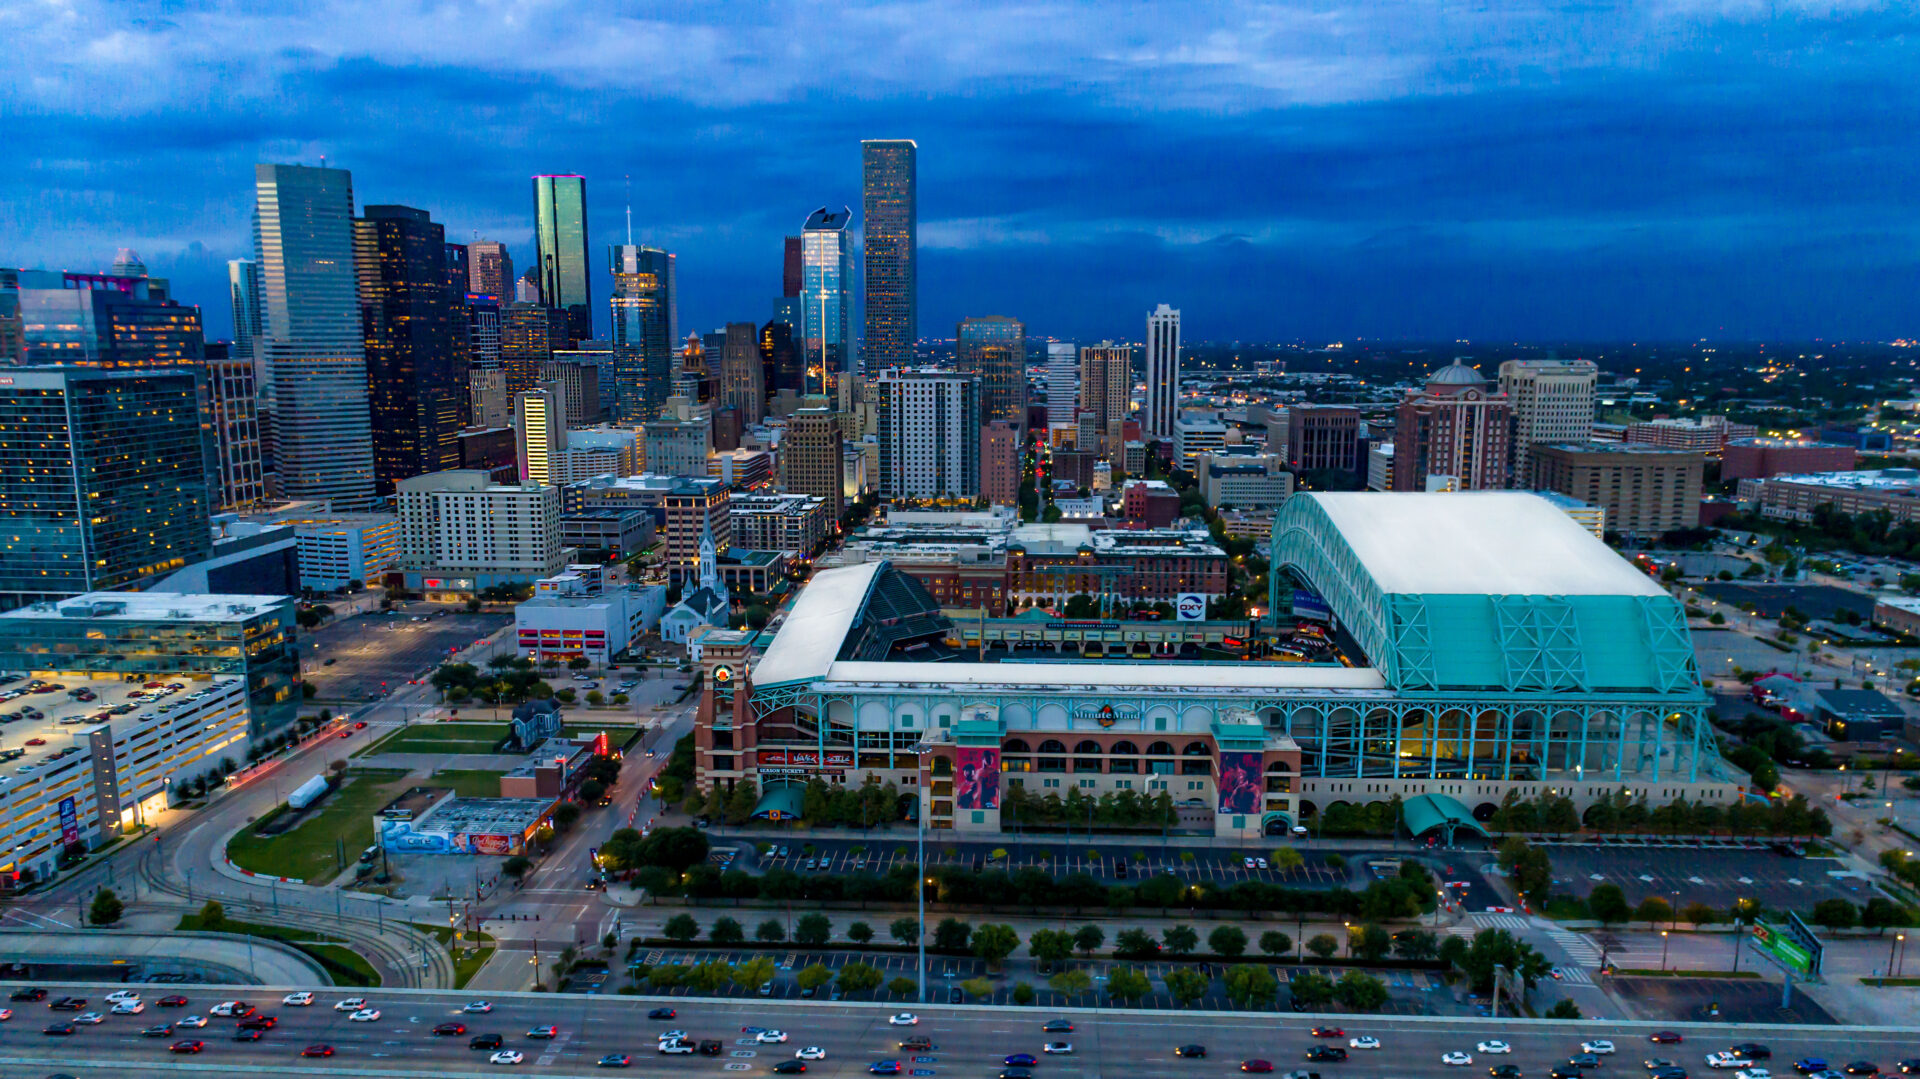 Aerial View of Minute Maid Park and Houston Skyline